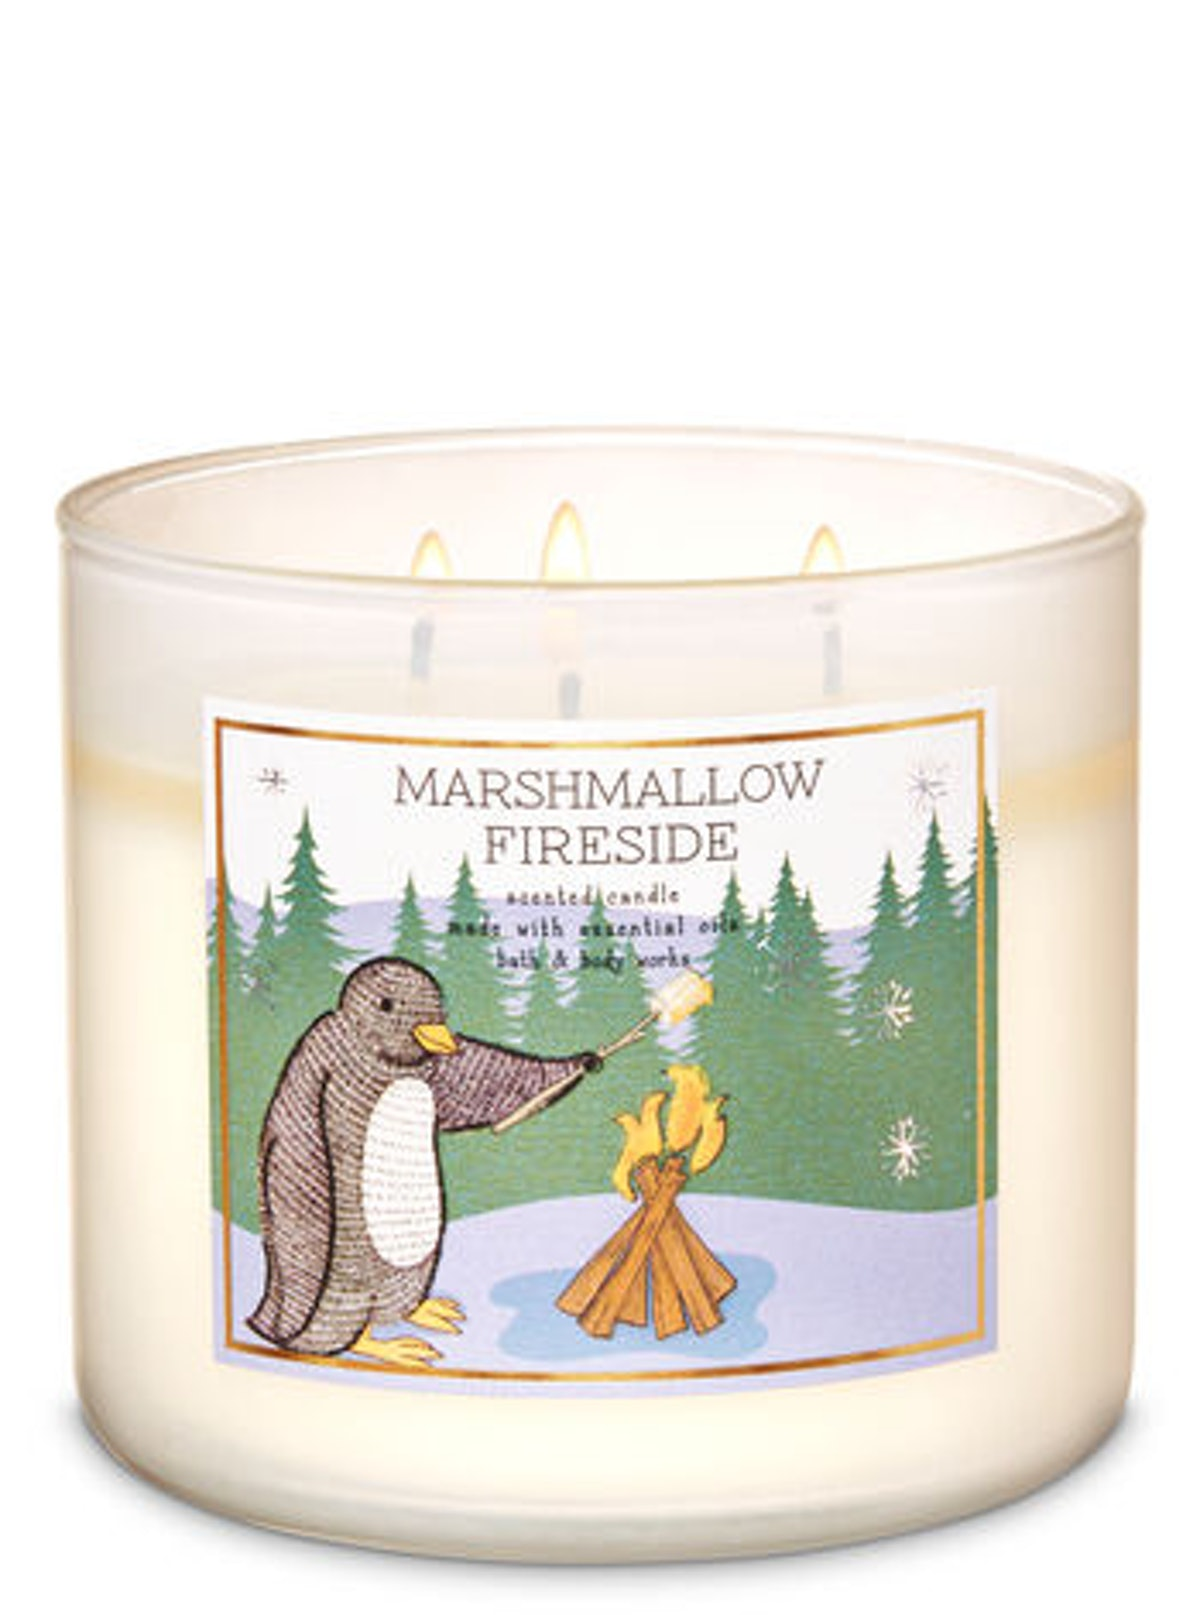 Marshmallow Fireside 3-Wick Candle